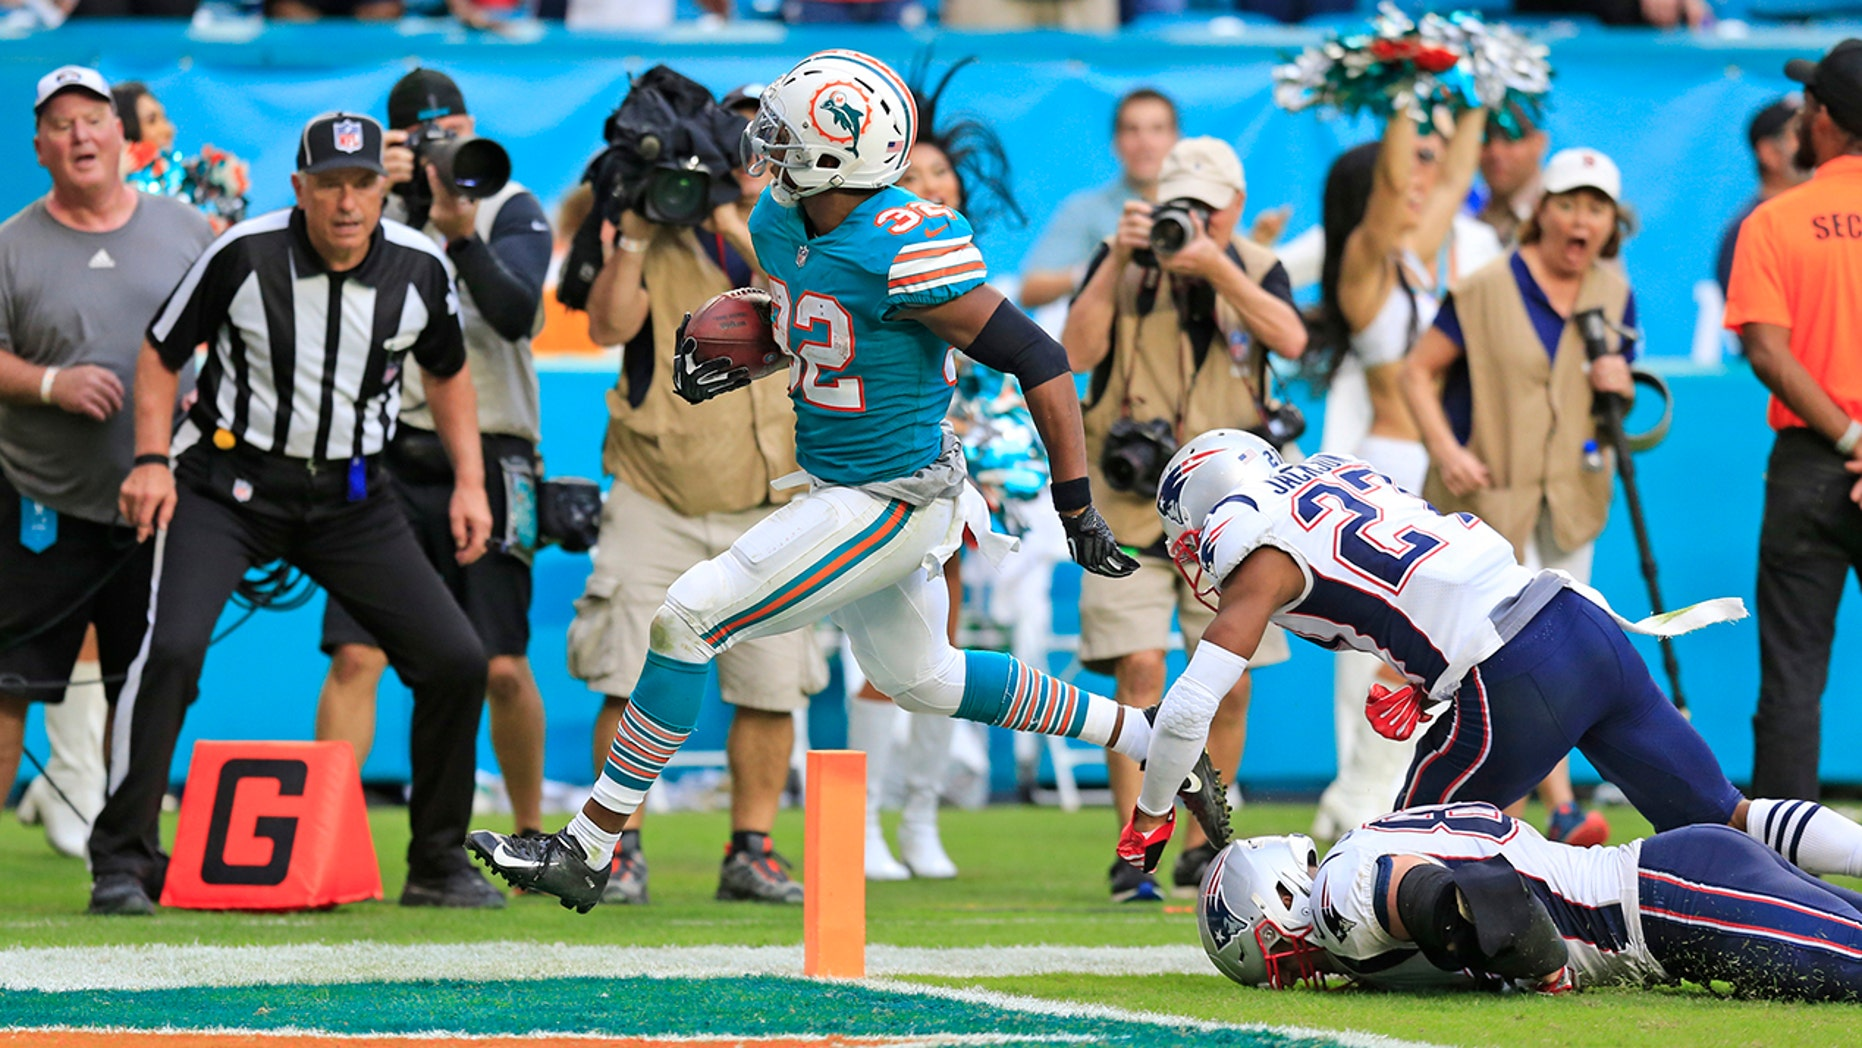 Miami Dolphins running back Kenyan Drake (32) scores to defeat the New England Patriots at Hard Rock Stadium in Miami Gardens on Sunday.